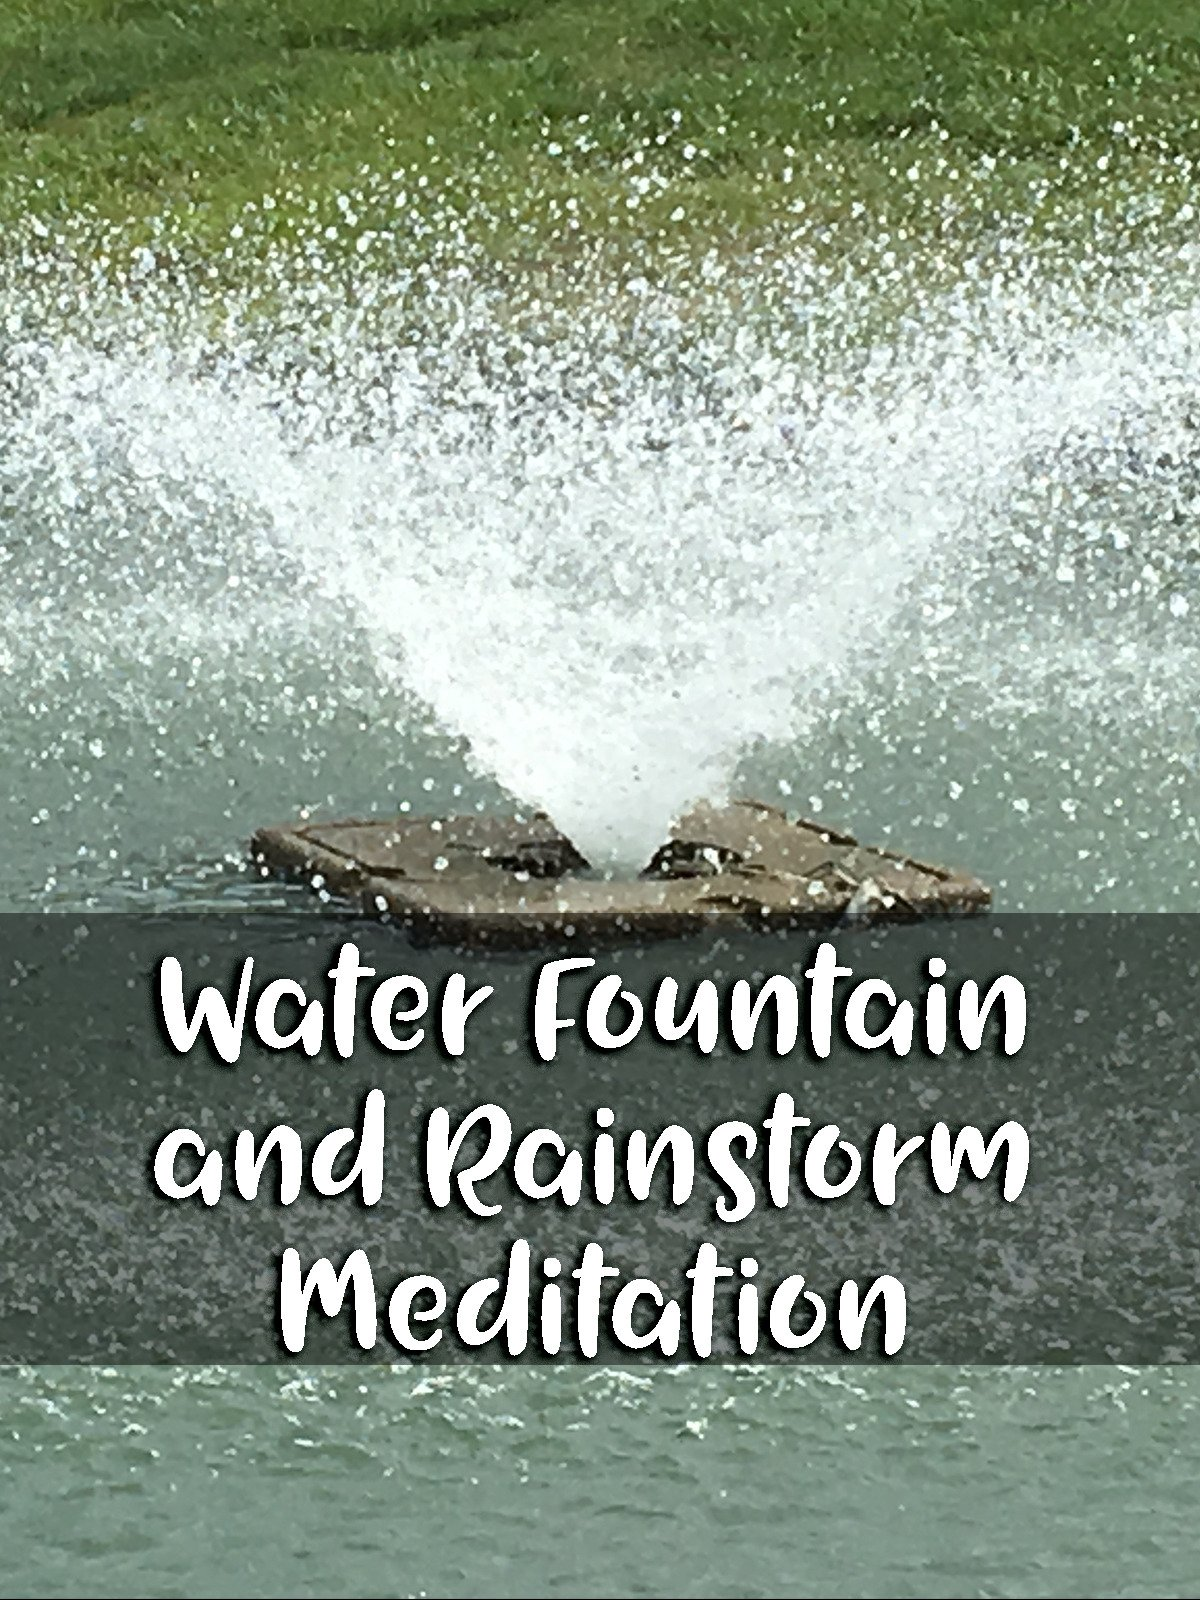 Water Fountain and Rainstorm Meditation